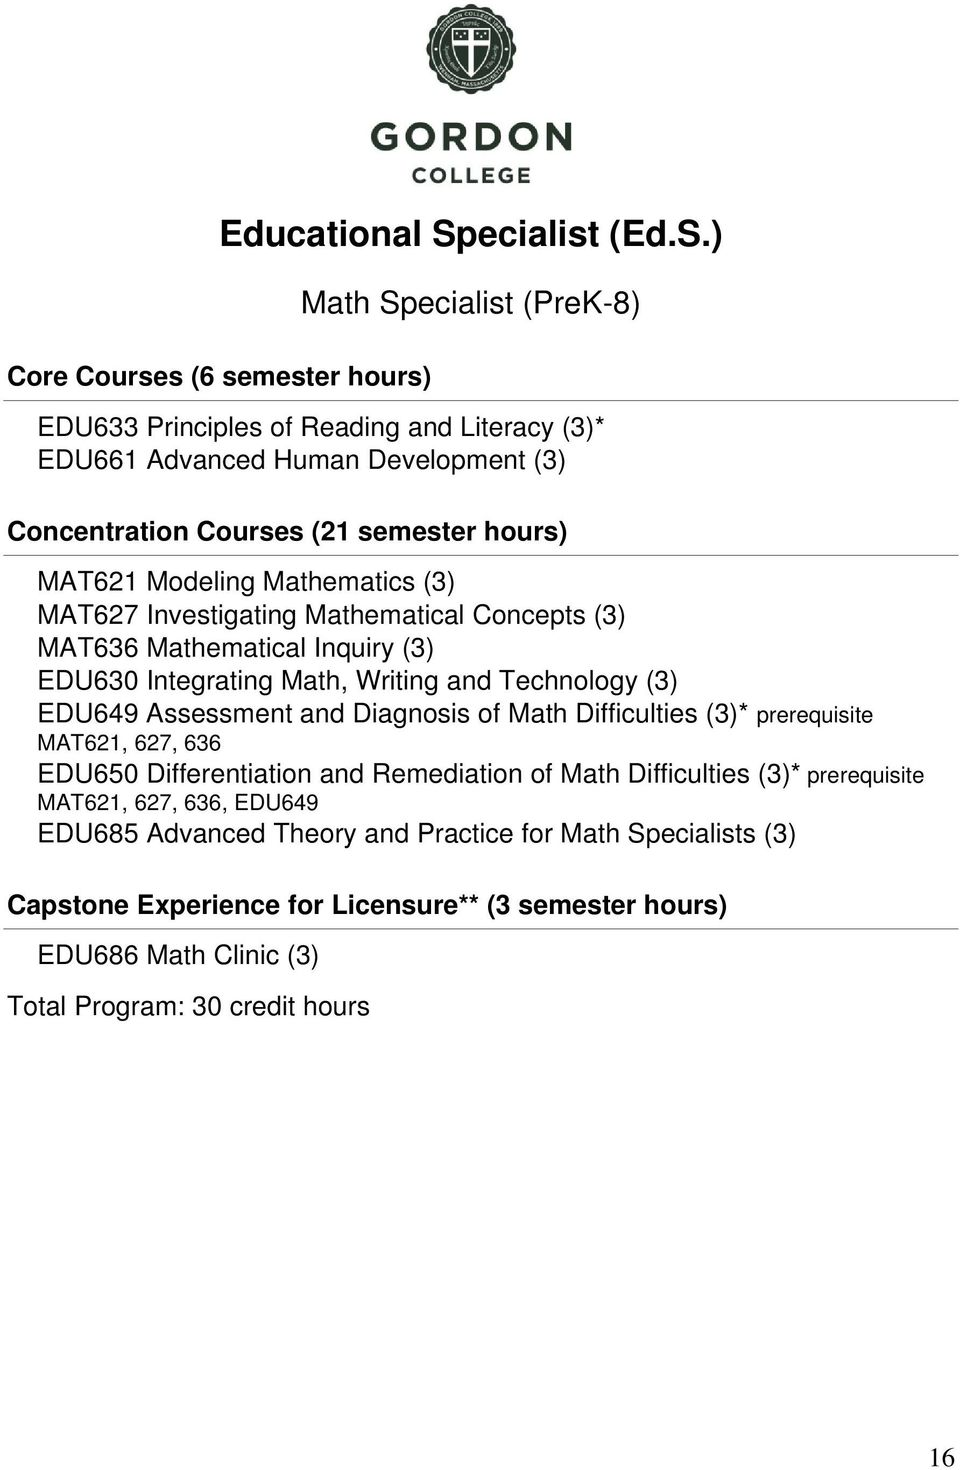 ) Core Courses (6 semester hours) Math Specialist (PreK-8) EDU633 Principles of Reading and Literacy (3)* EDU66 Advanced Human Development (3) Concentration Courses (2 semester hours)